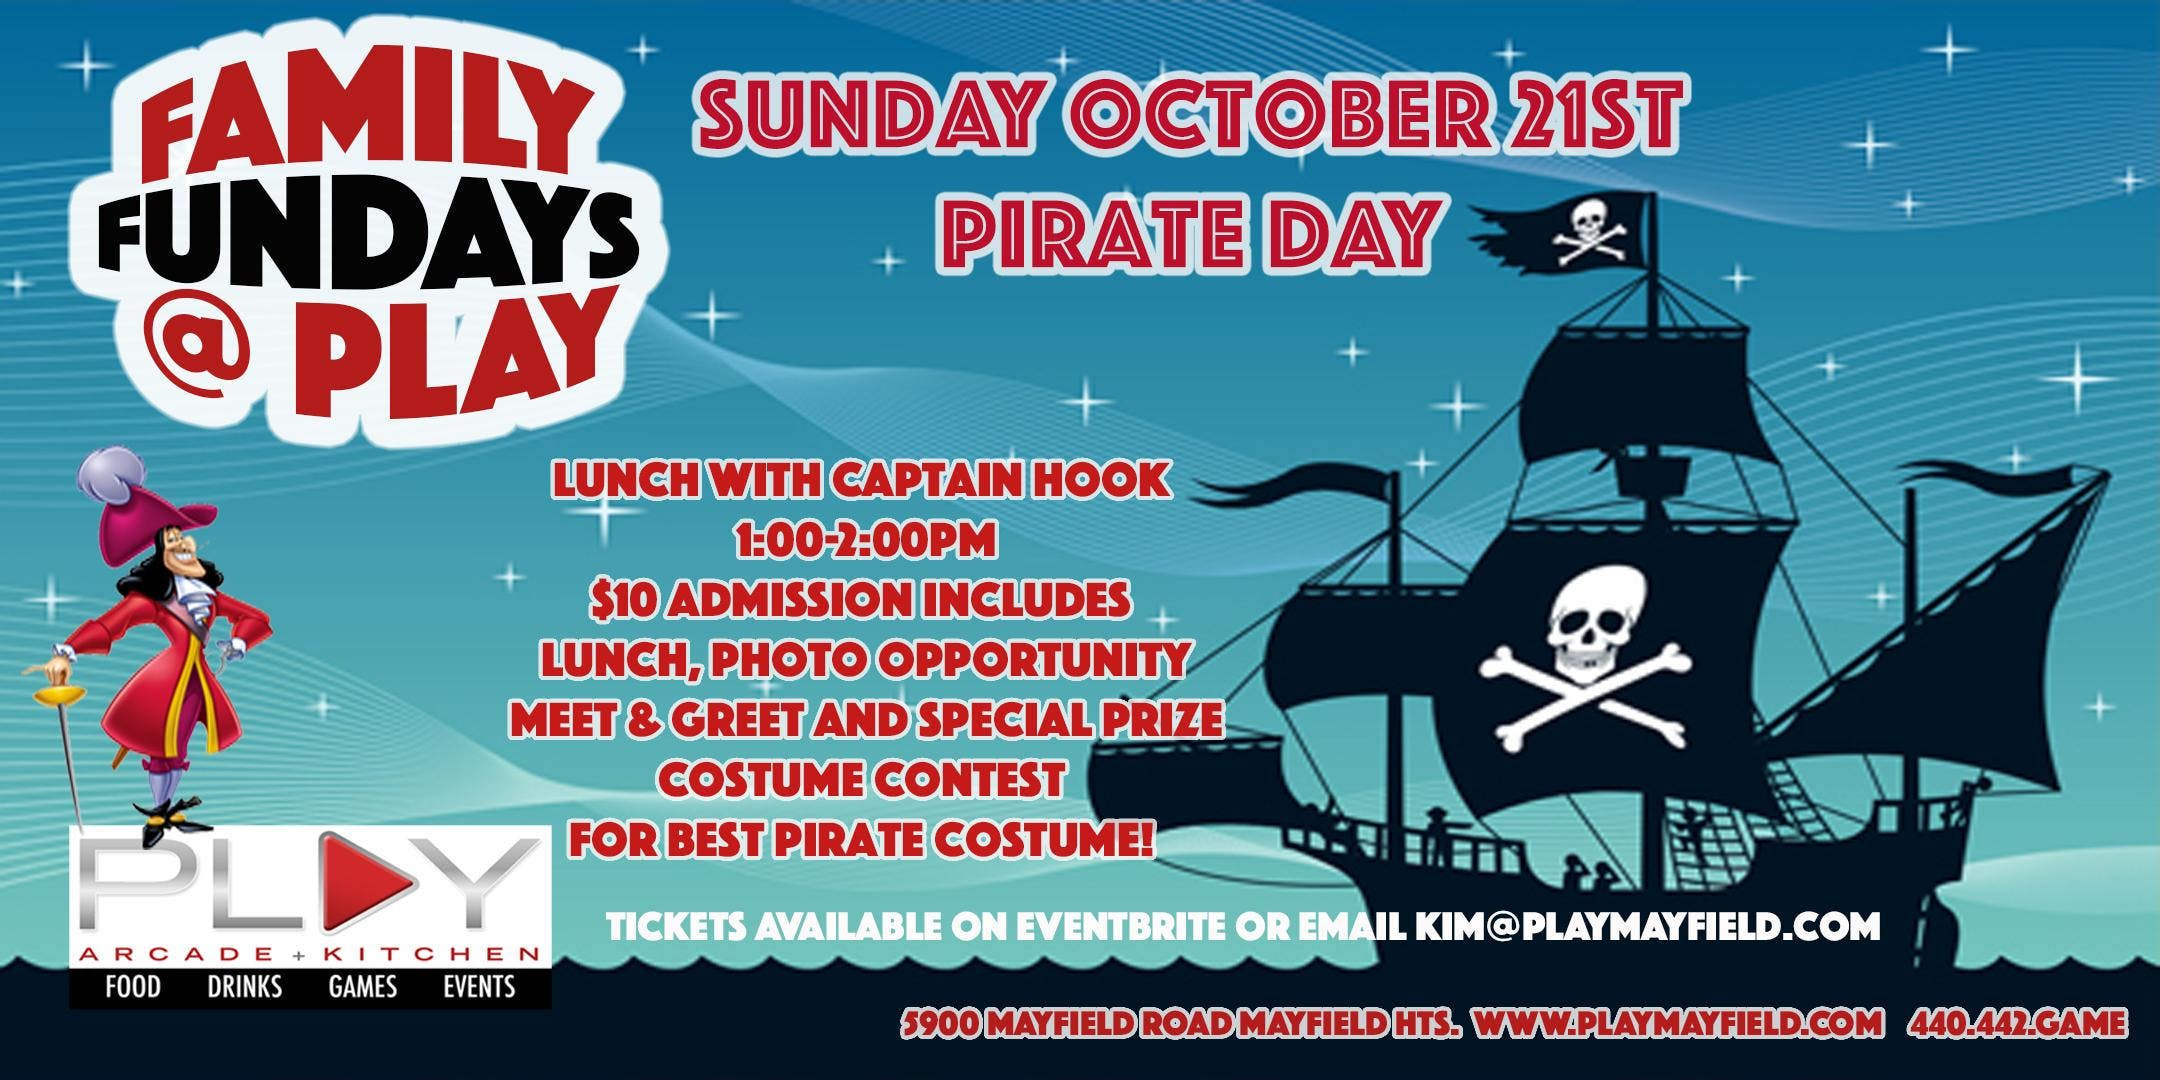 Family Fundays @ Play - Pirate Day - 21 OCT 2018